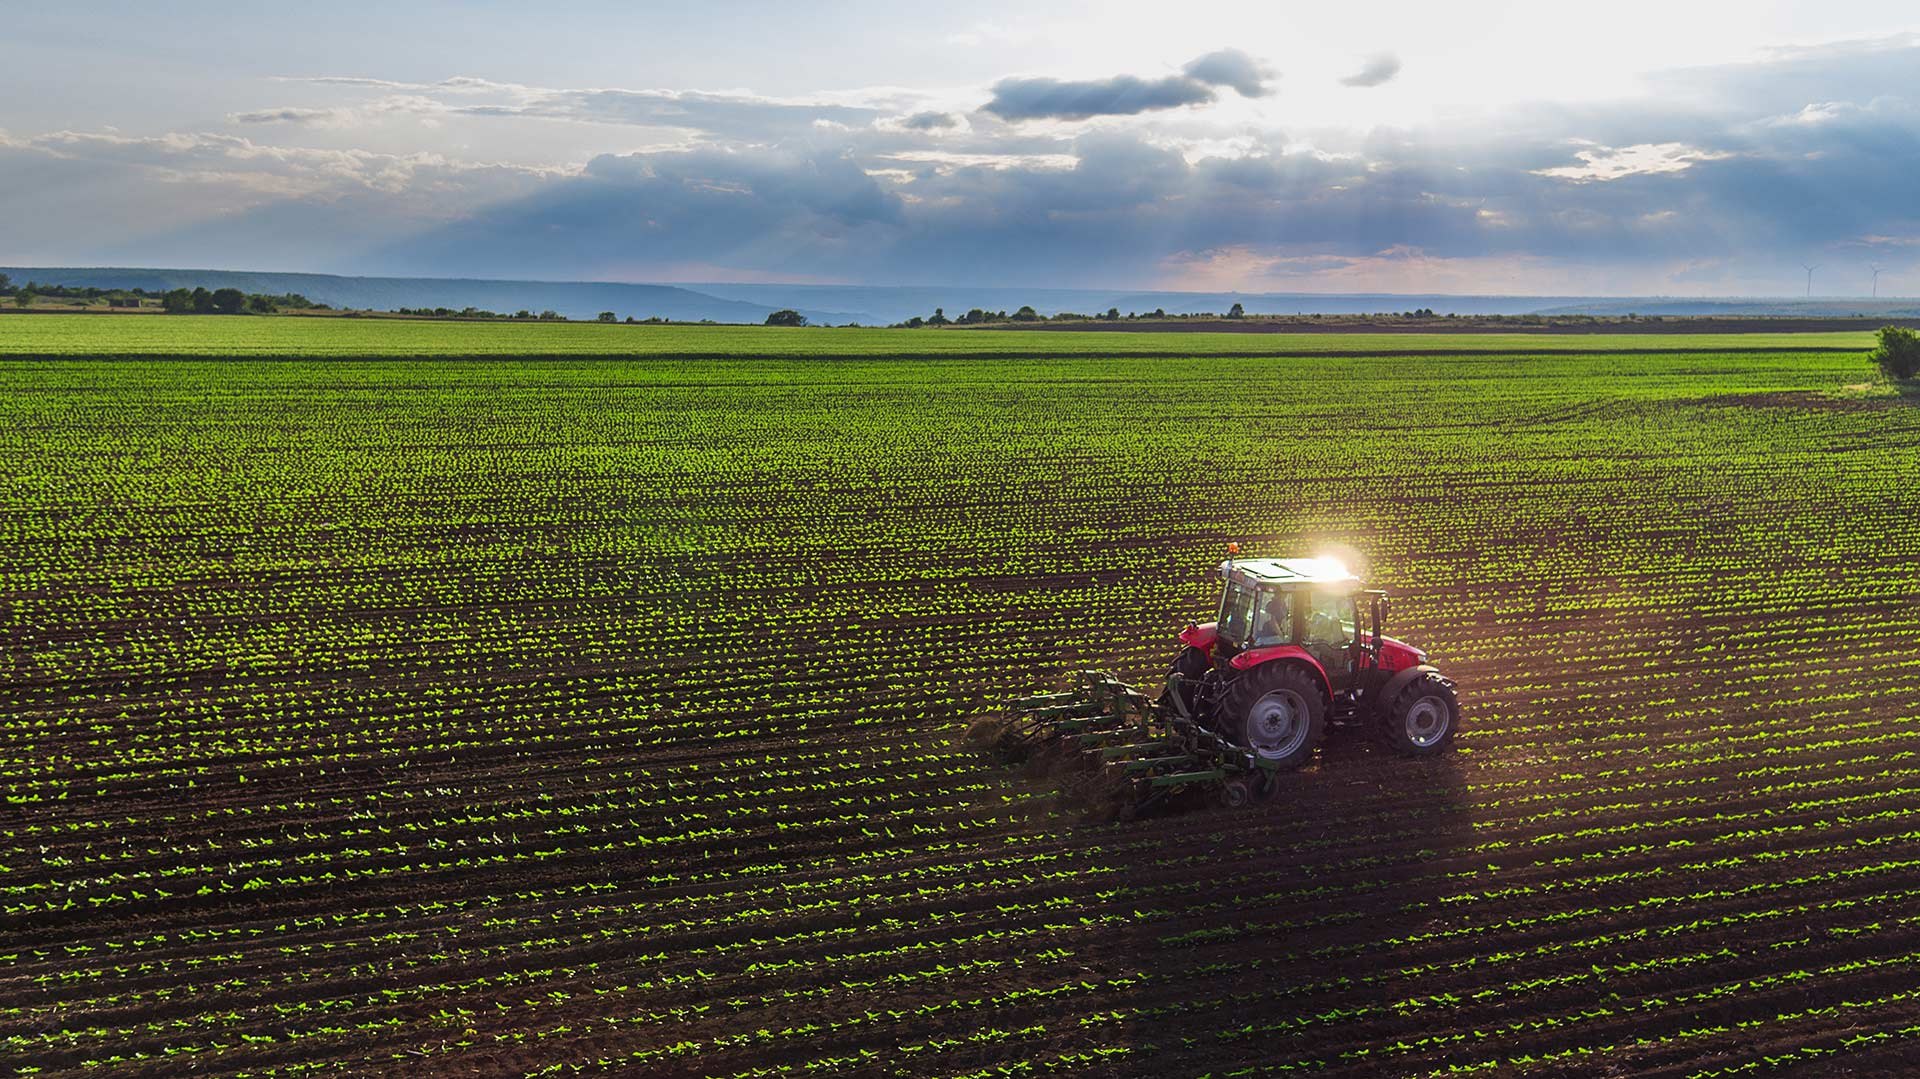 aerial shot of a red tractor ploughing a farm crop